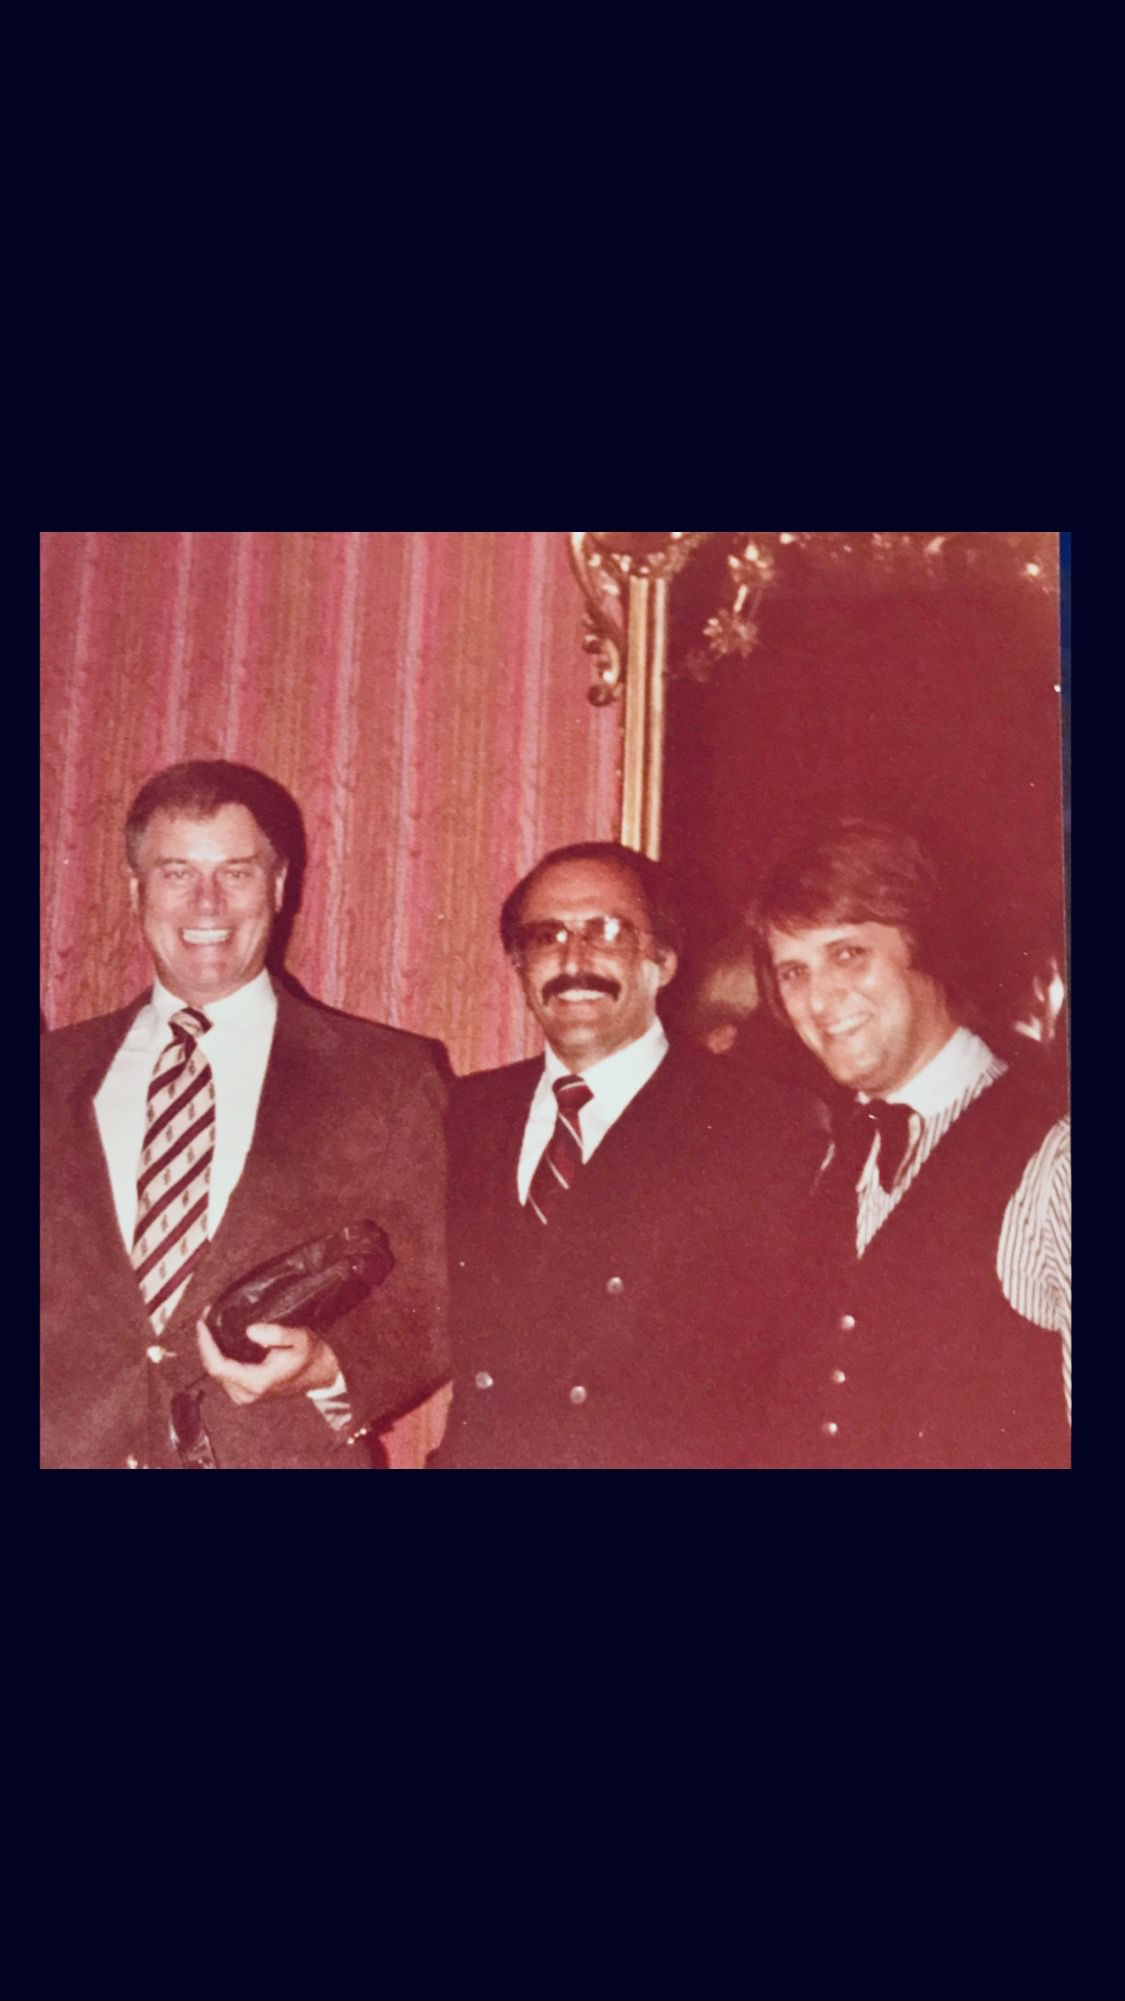 Tom Ruggeri (center), owner of Ruggeri's restaurant, served many famous faces over the years, including actor Larry Hagman (left). Also pictured is longtime bar manager Sonny Skrakowski.